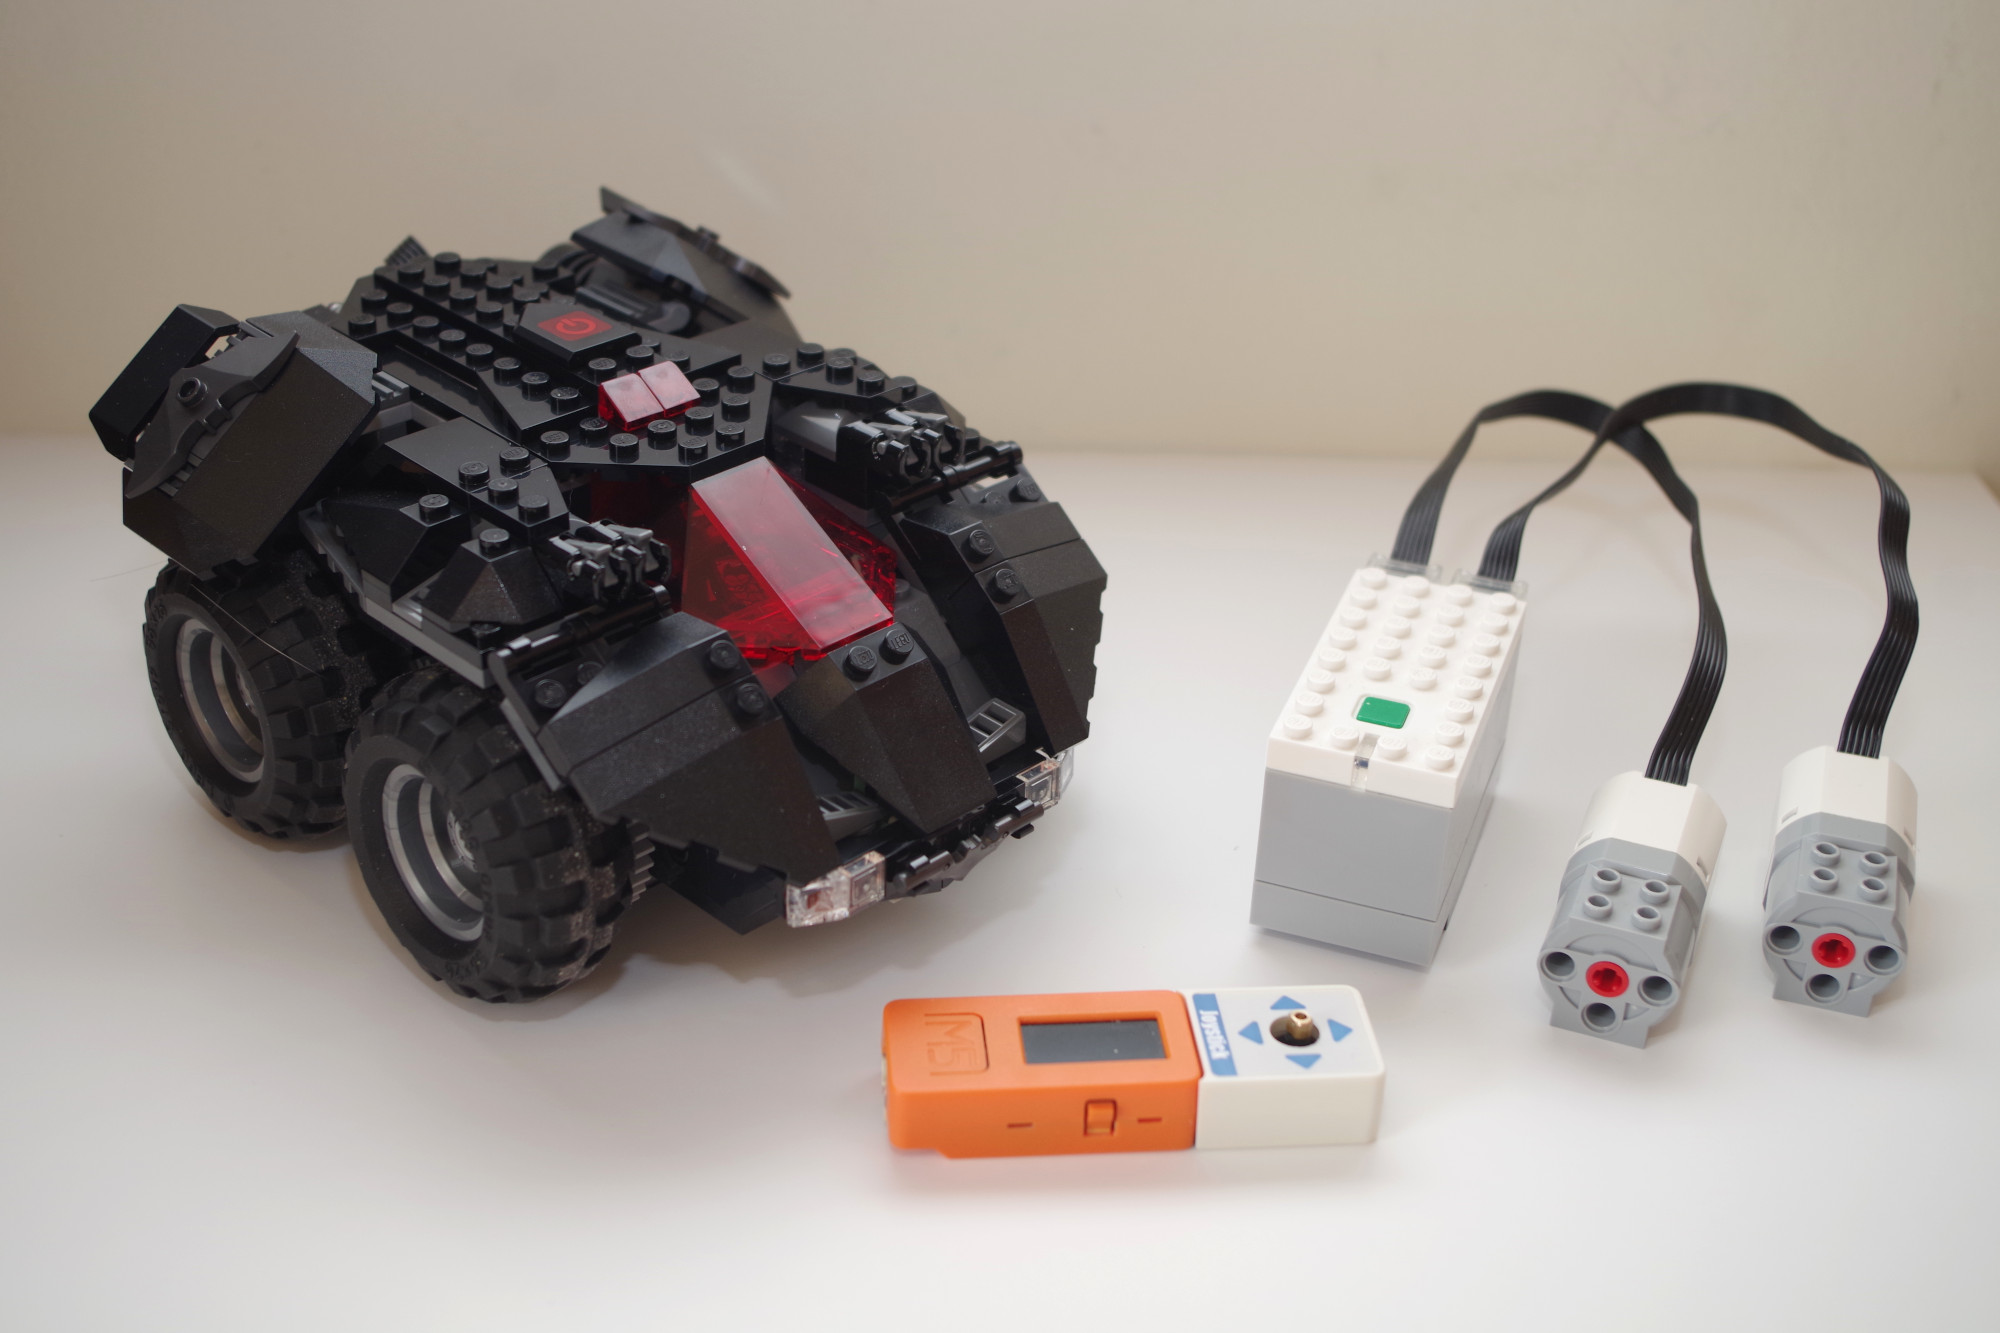 Batmobile controlled by M5StickC and Joystick hat